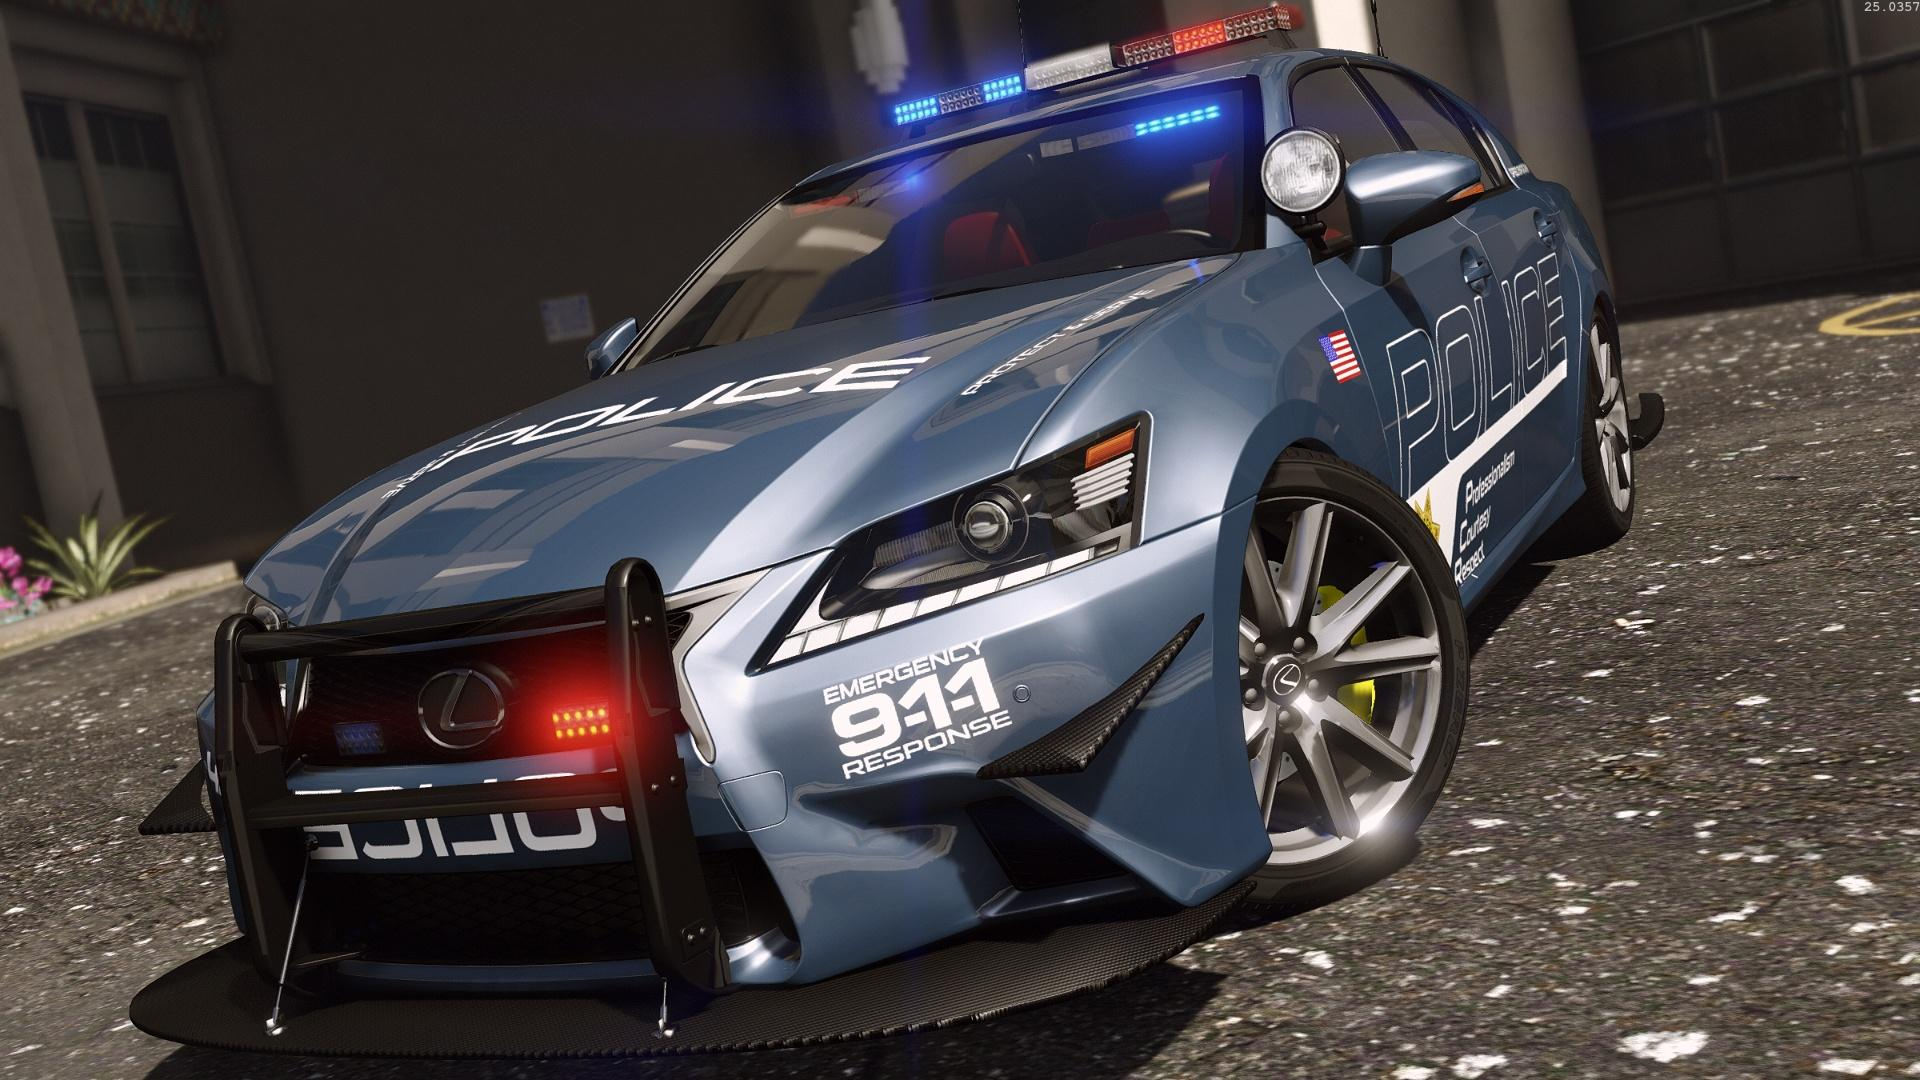 Police Car Lights Wallpaper Lexus Gs 350 Hot Pursuit Police Add On Replace